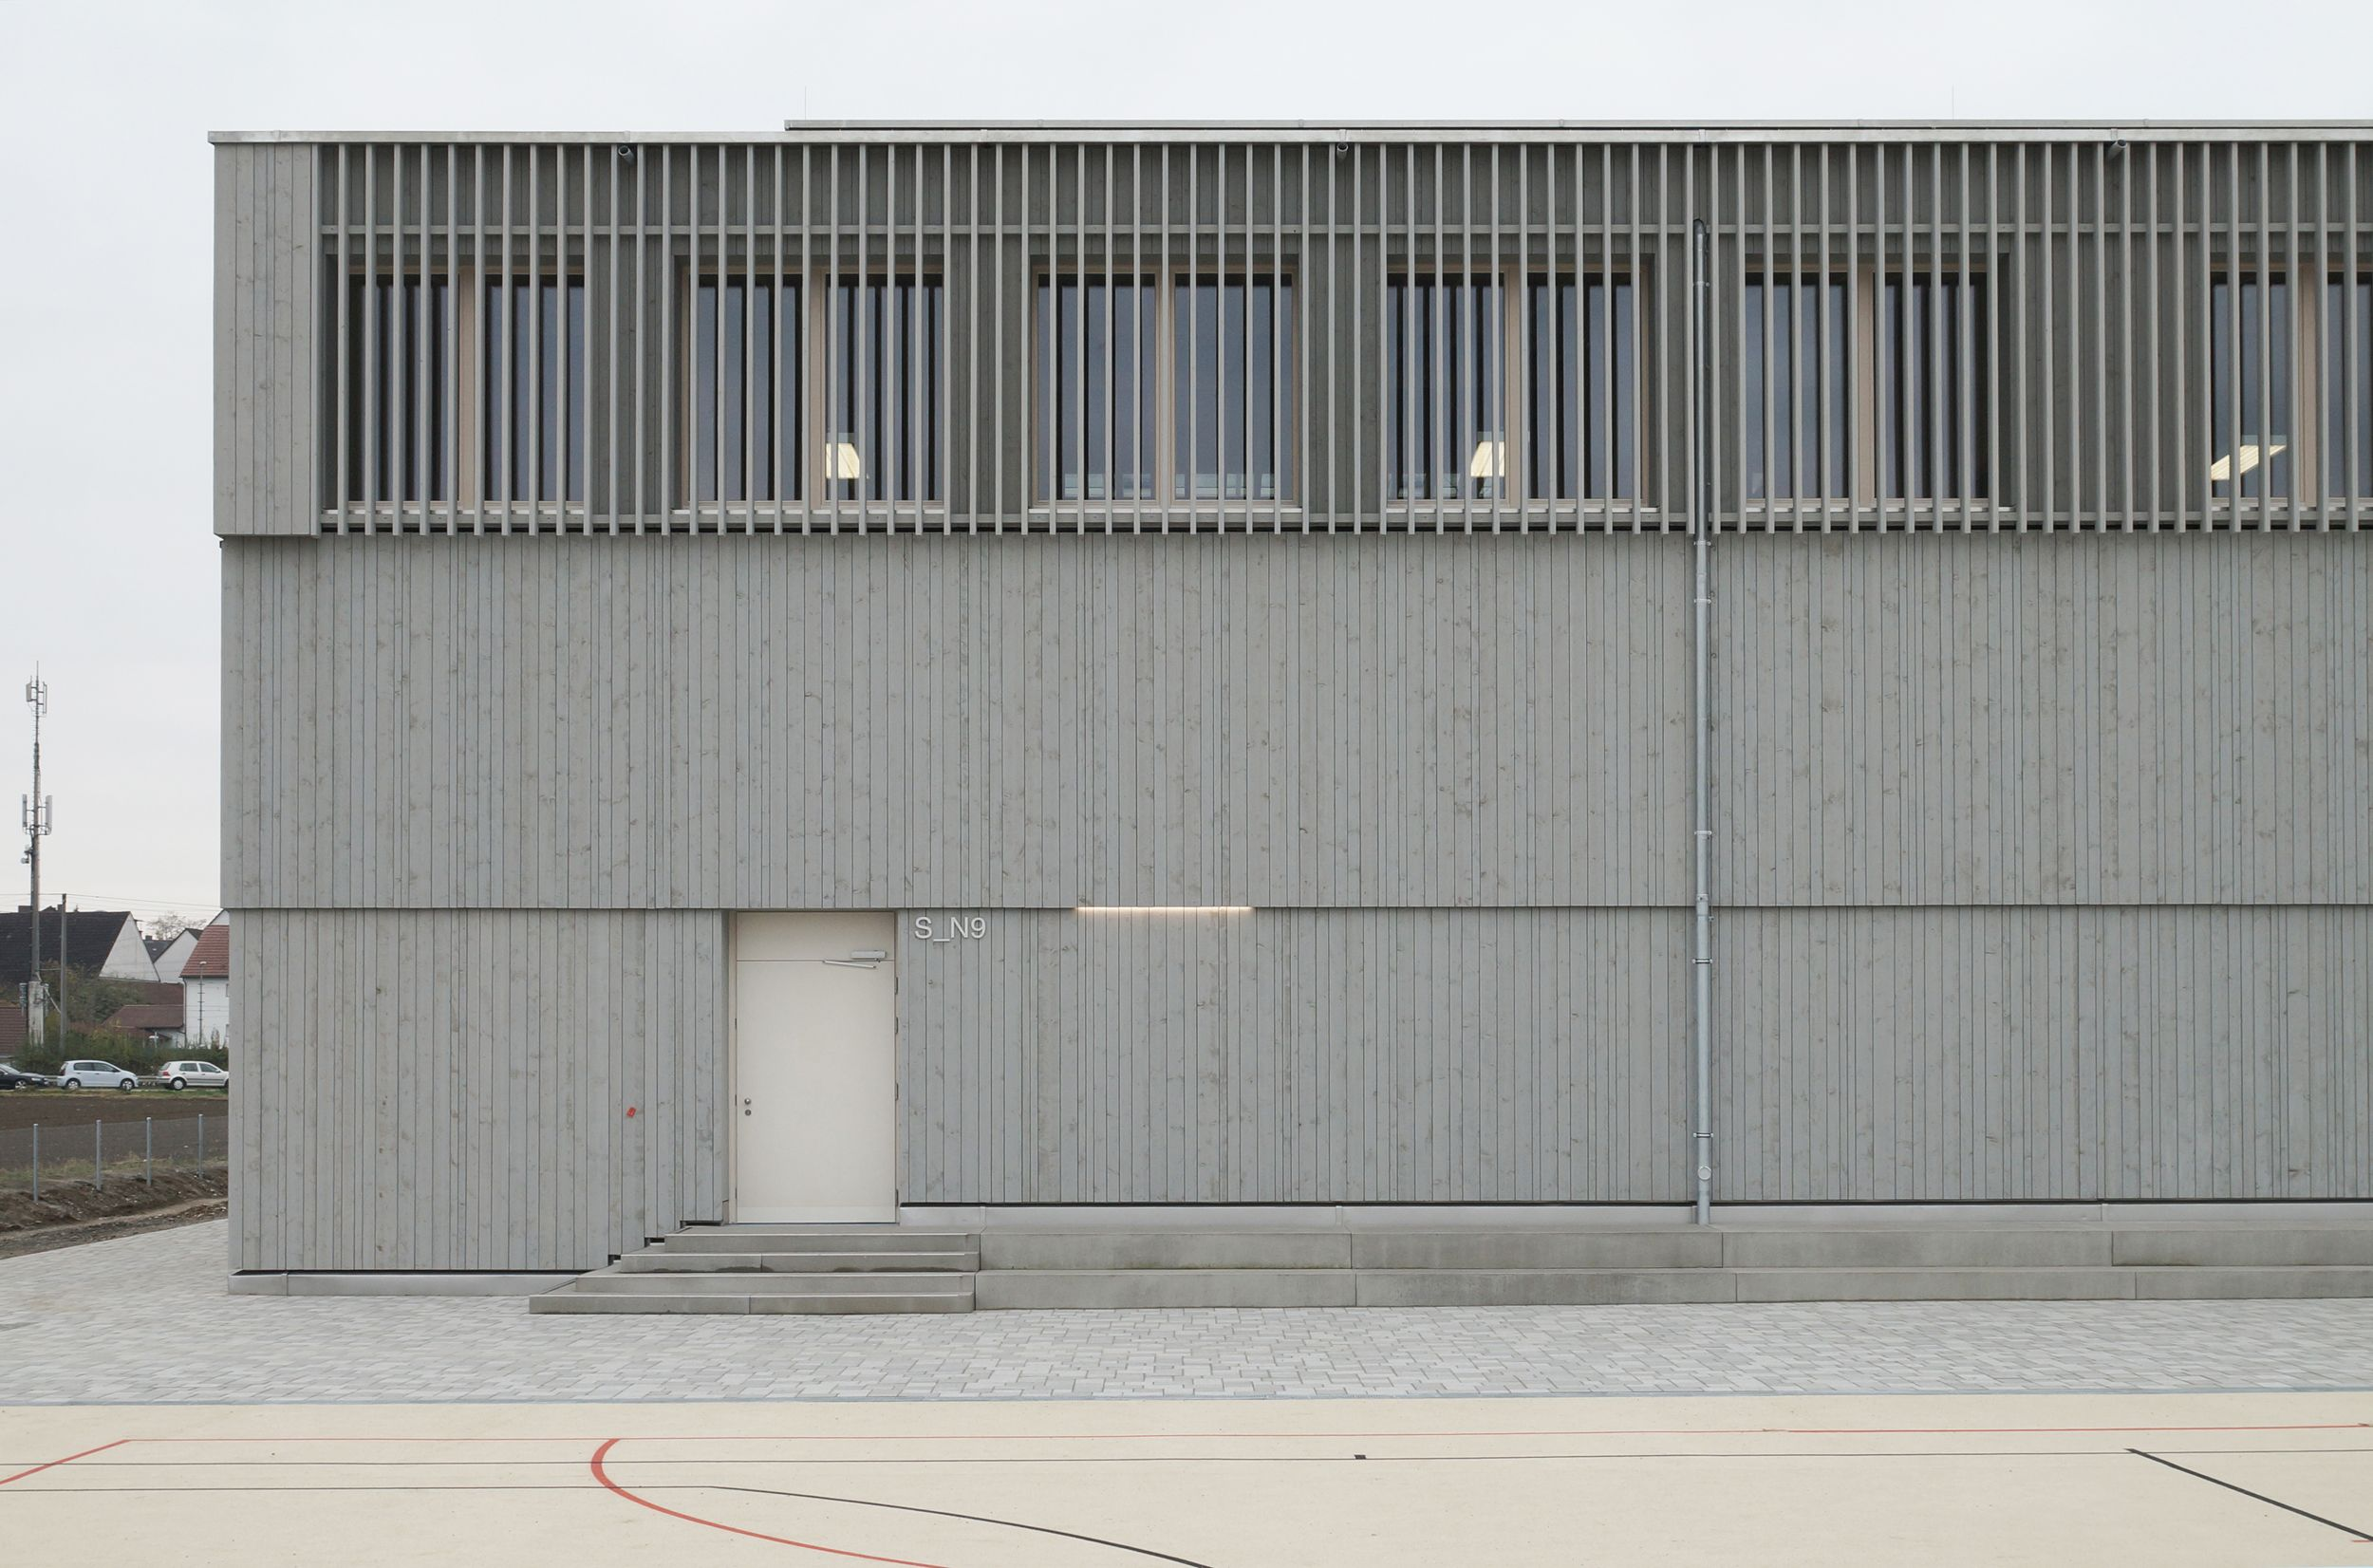 Pleated fabric doors pilotproject org - A Plus Energy Pilot Project The Schmuttertal Gymnasium In Diedorf Detail Online